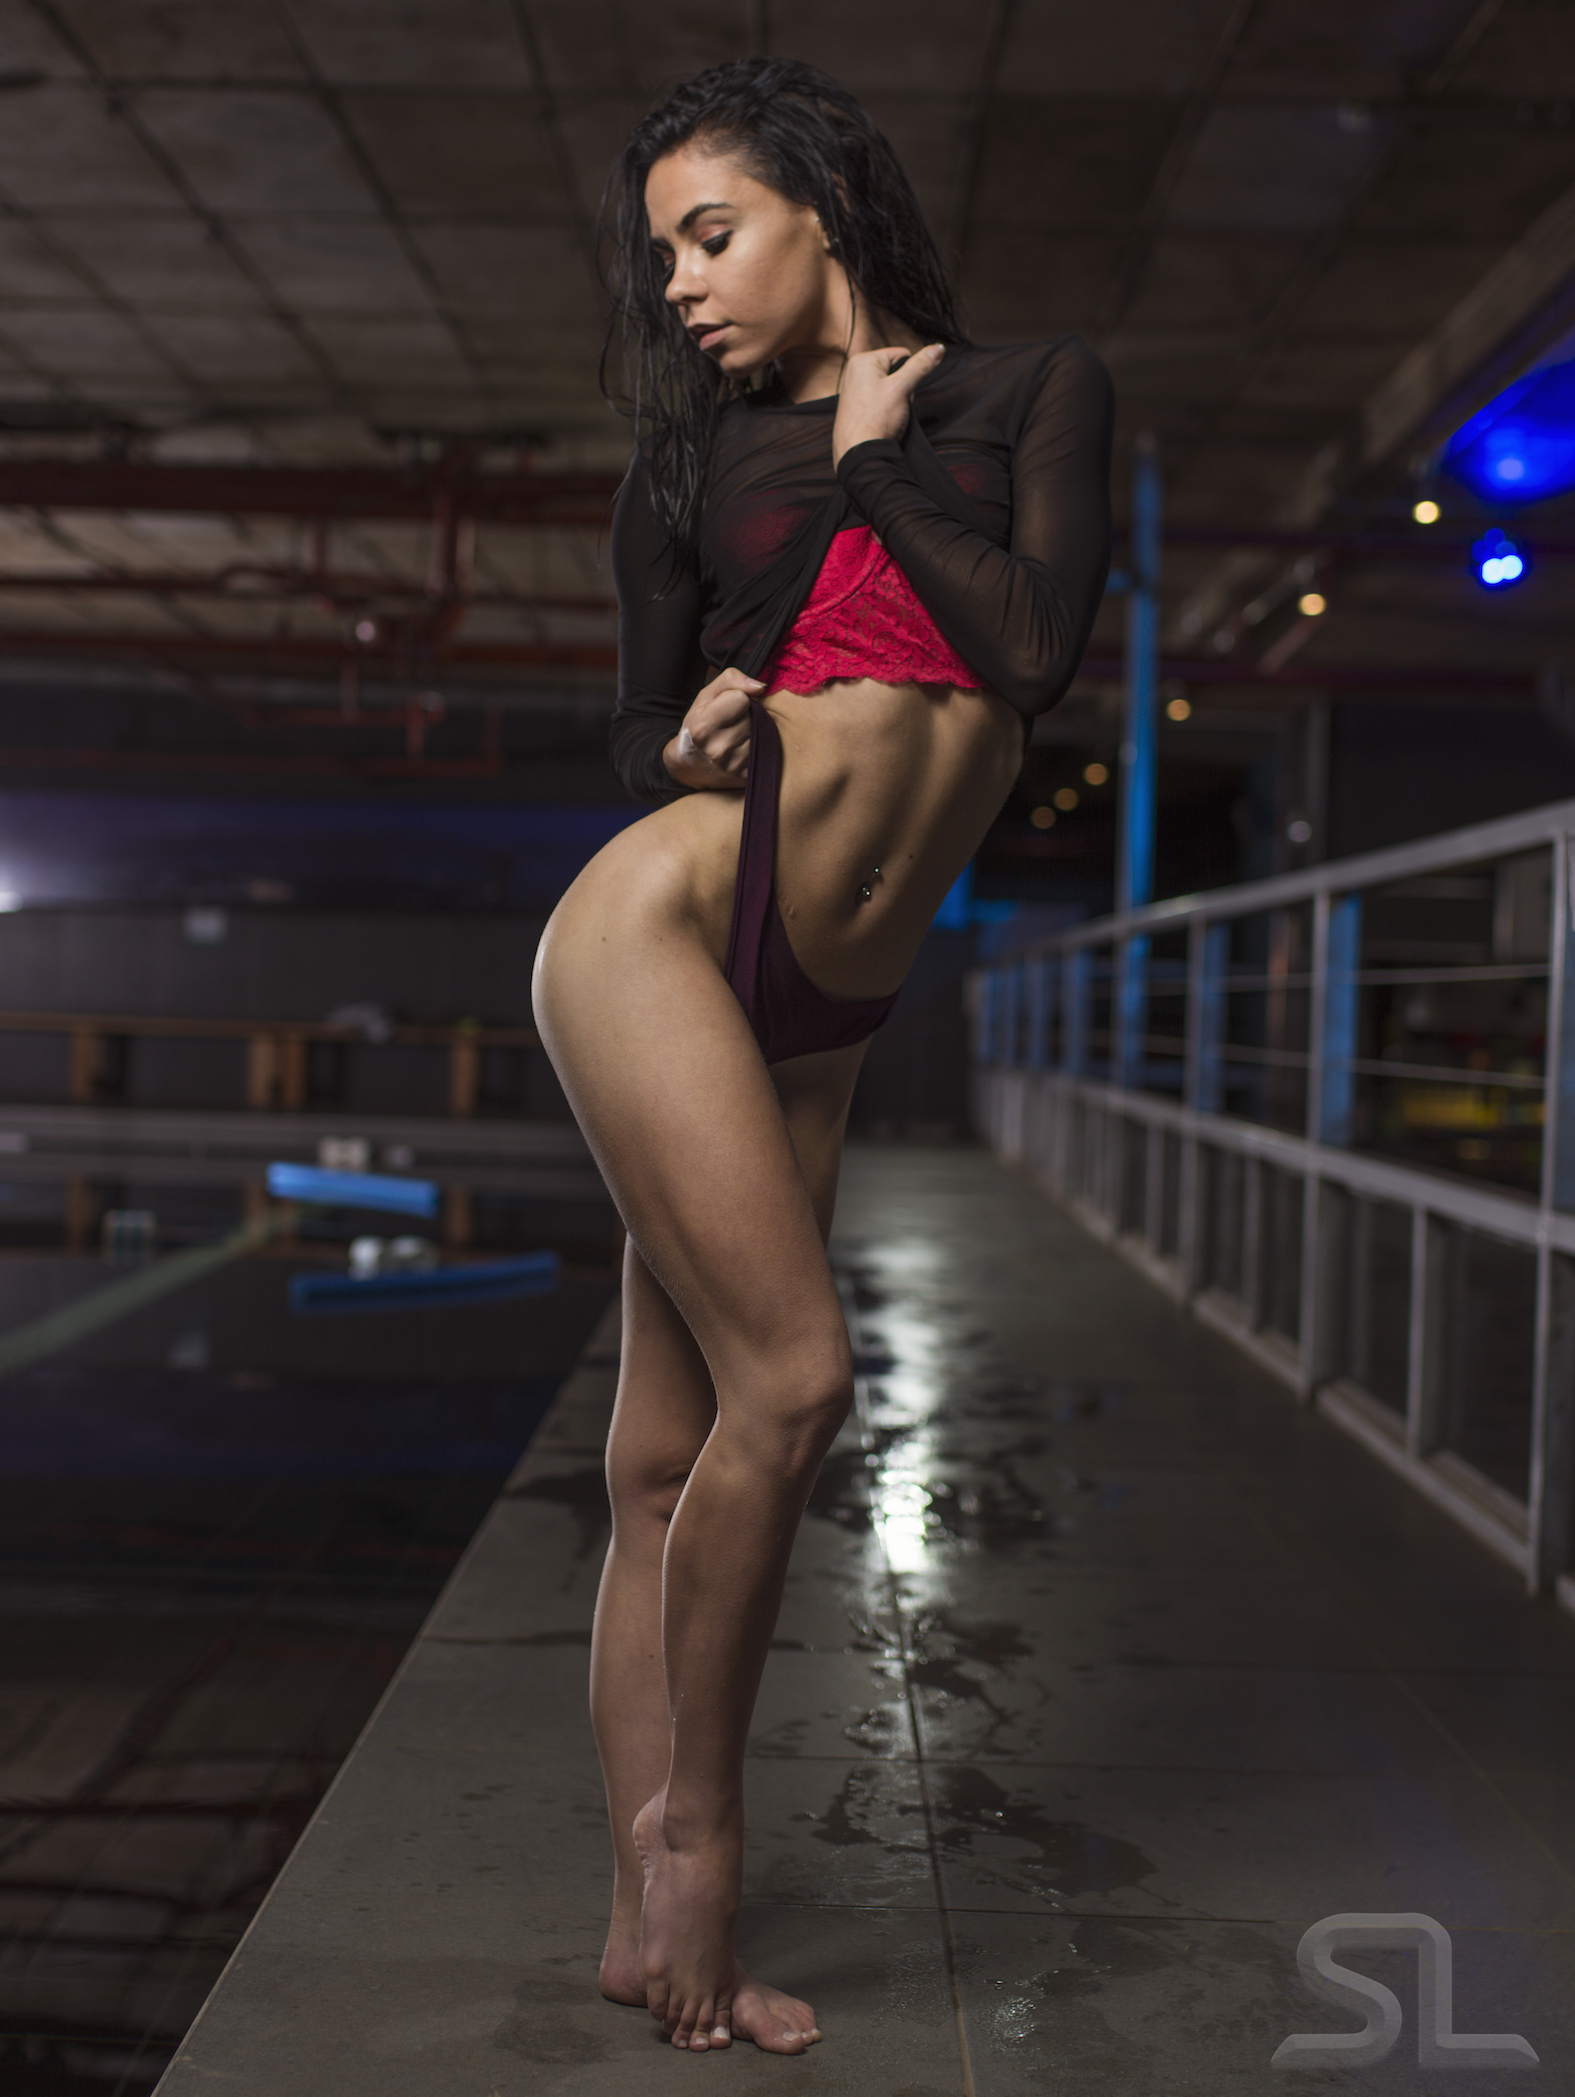 Jessie Rautenbach Features as this week's LW Babe